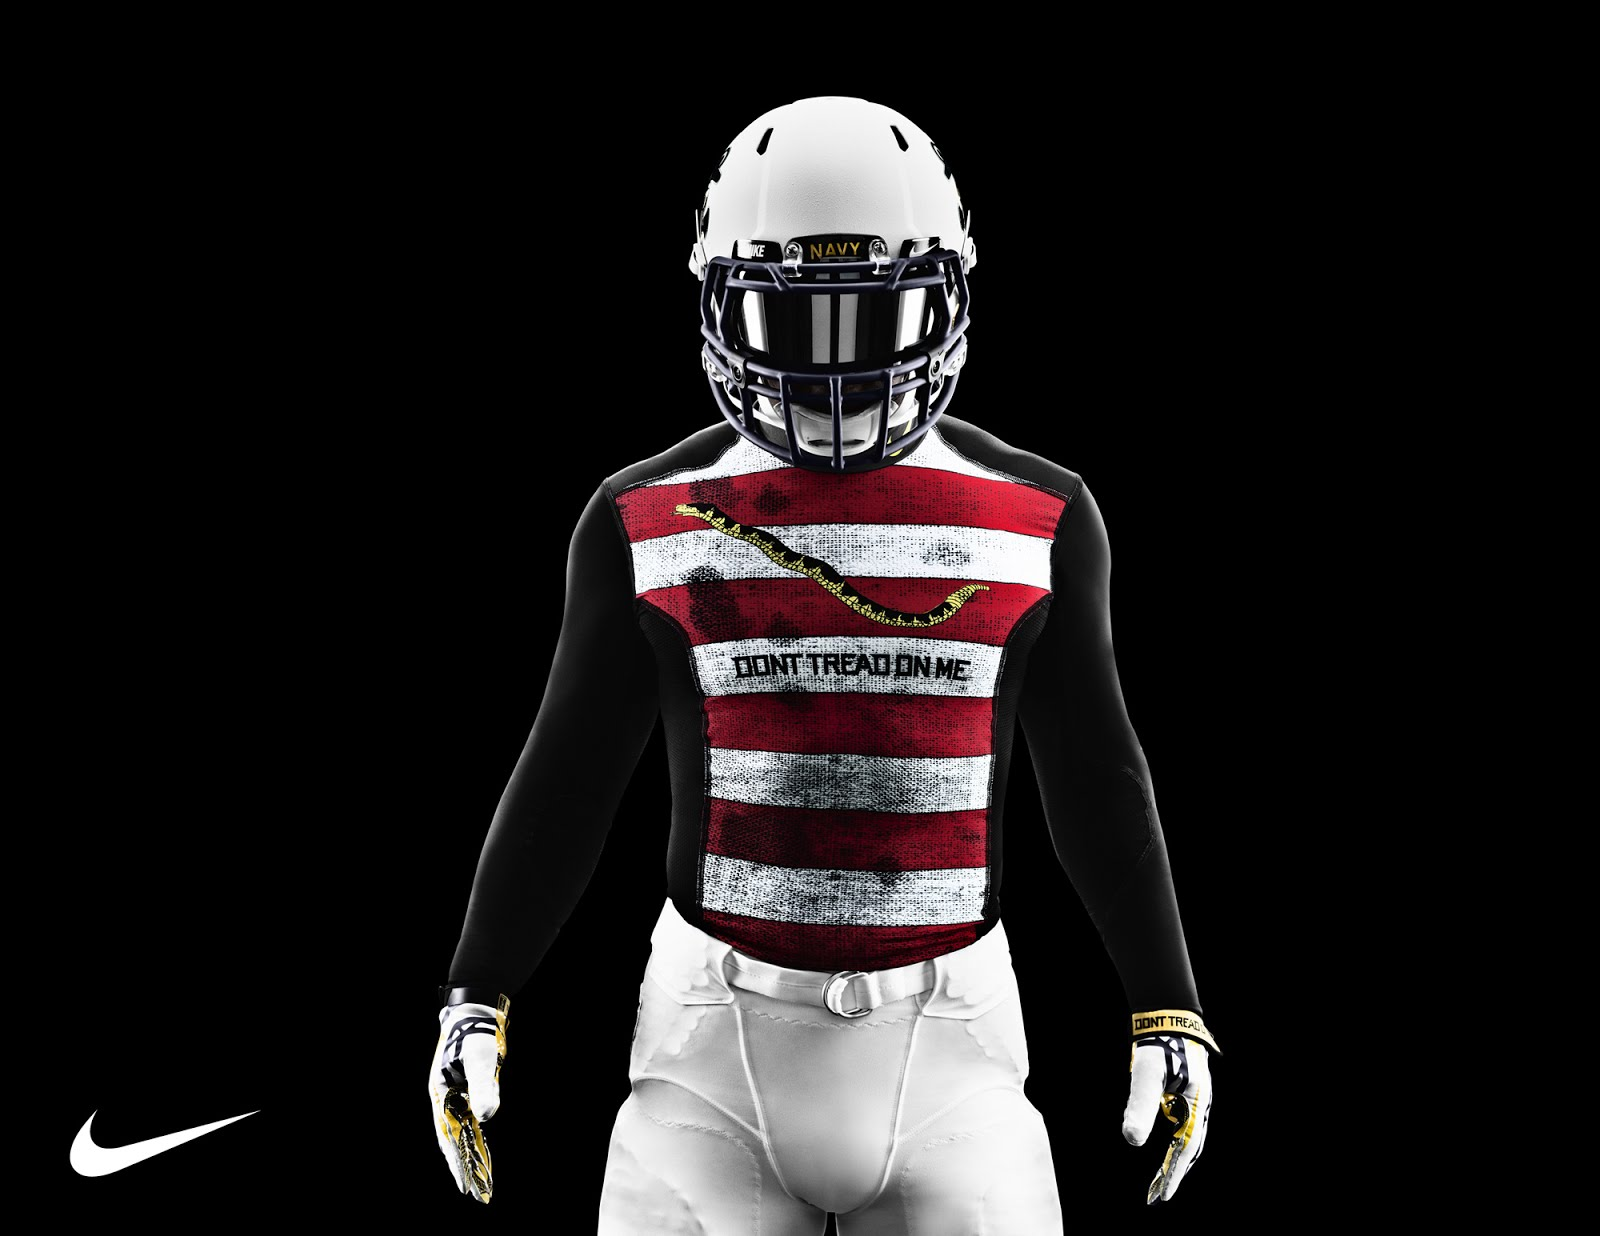 Super Punch: Army and Navy football uniforms by Nike